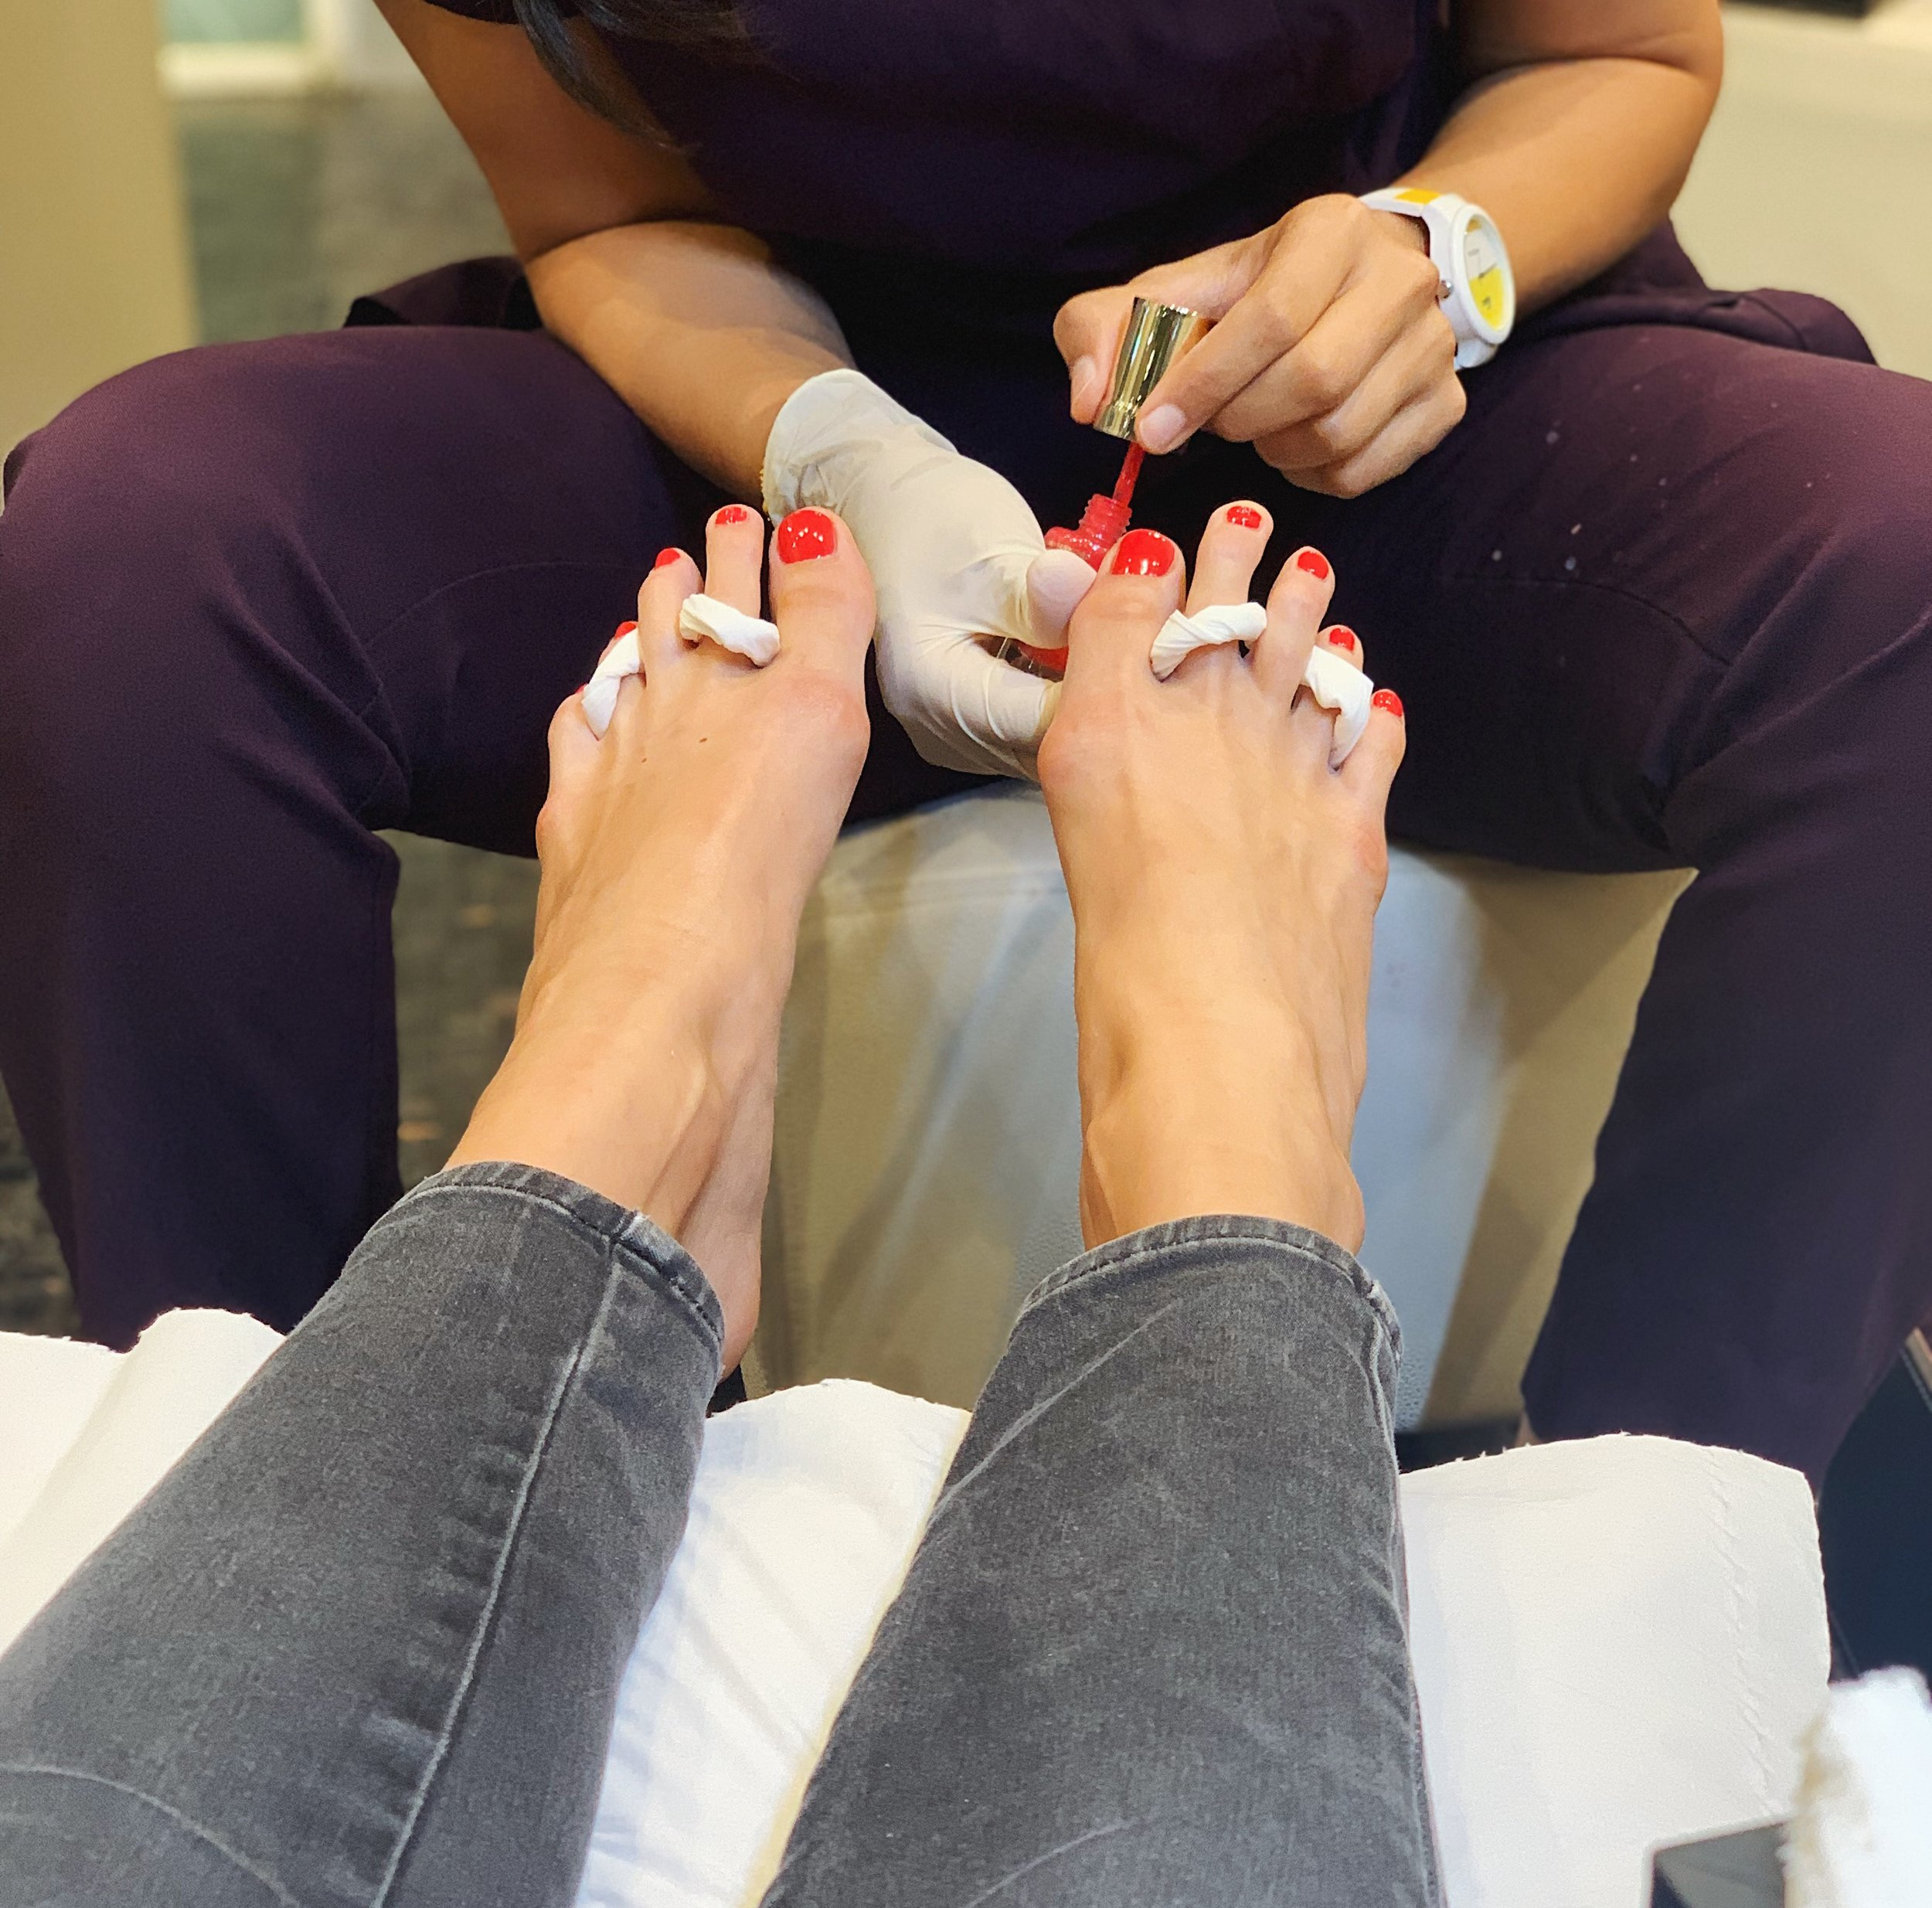 Last step was applying a lovely summery nail polish colour. Wasn't so easy to choose one colour as Margaret Dabbs offers a wide range of amazing nail polish shades :)